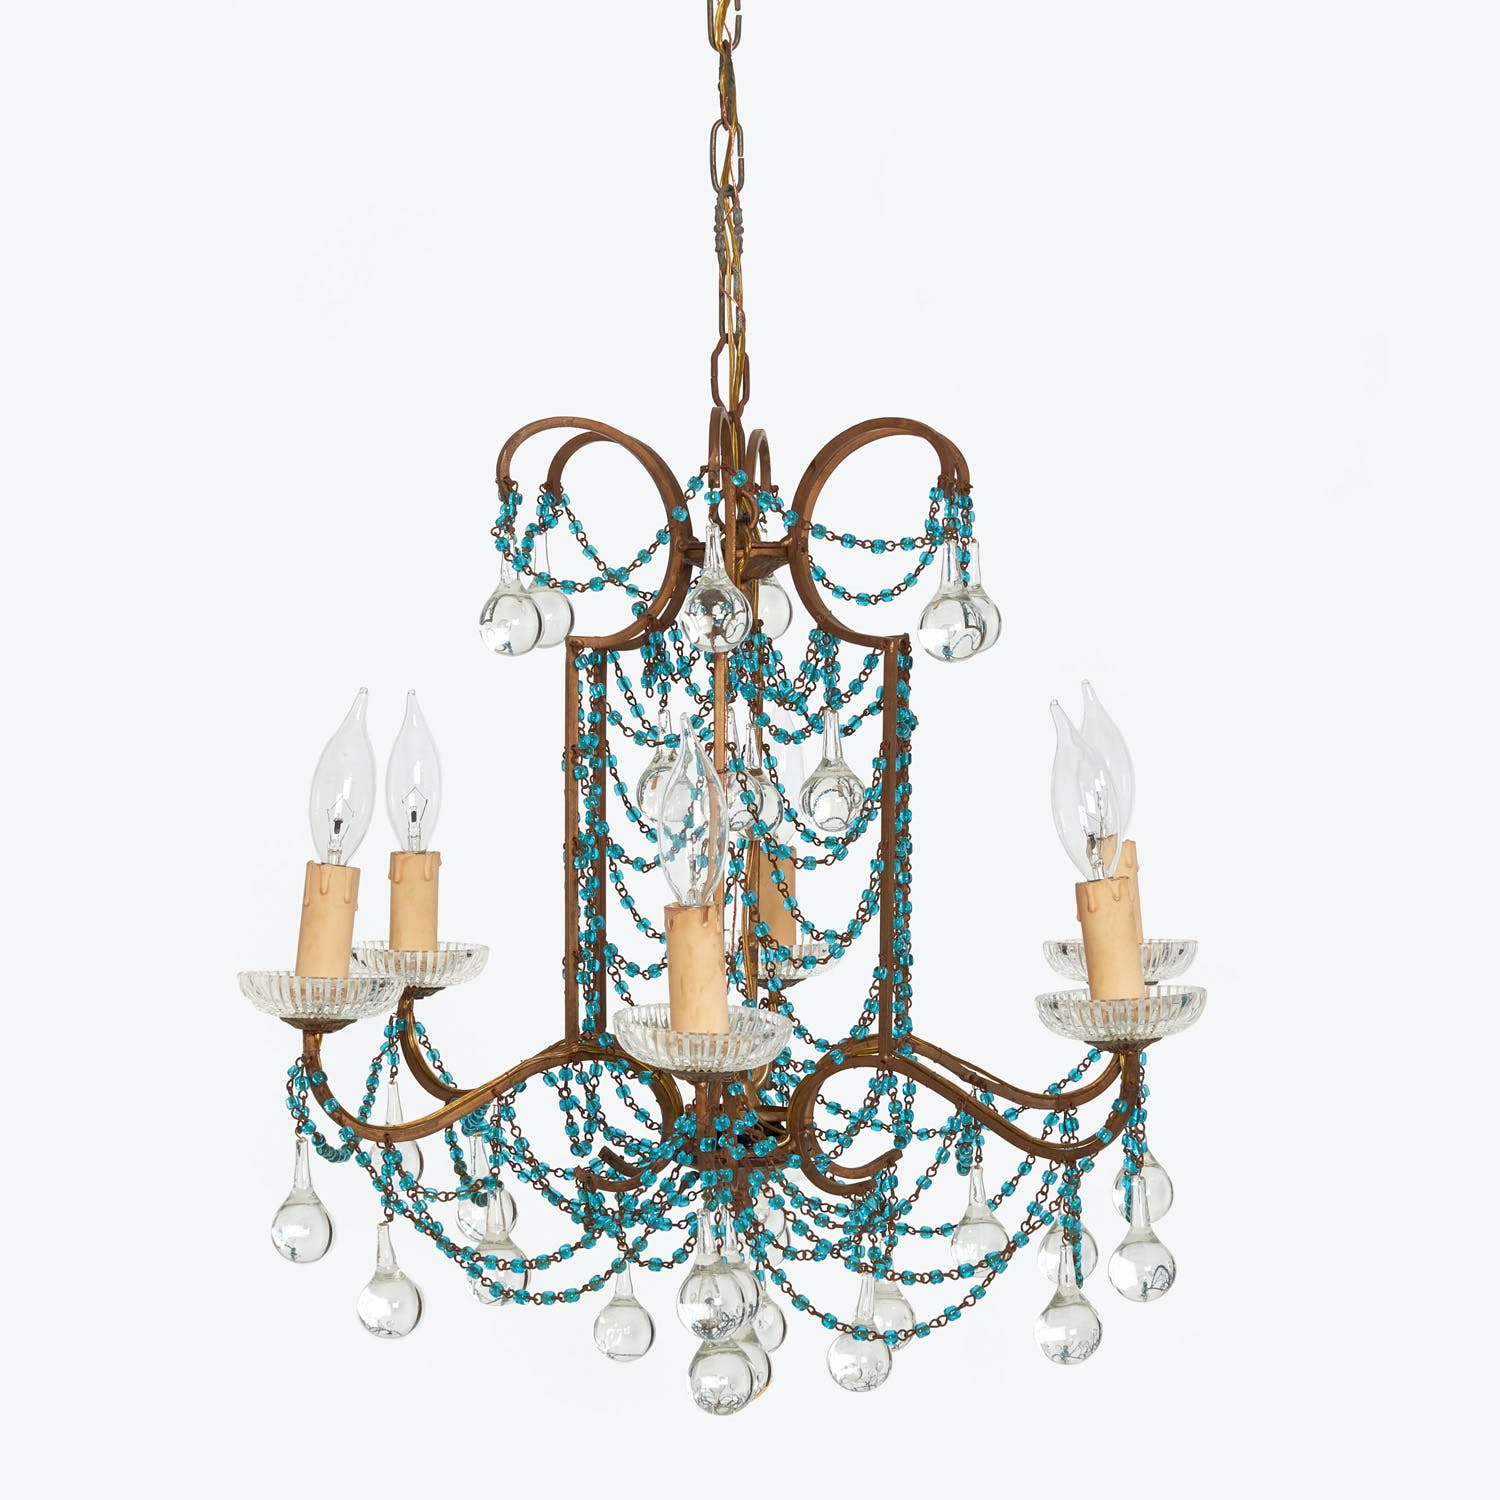 Antique Beaded Chandelier